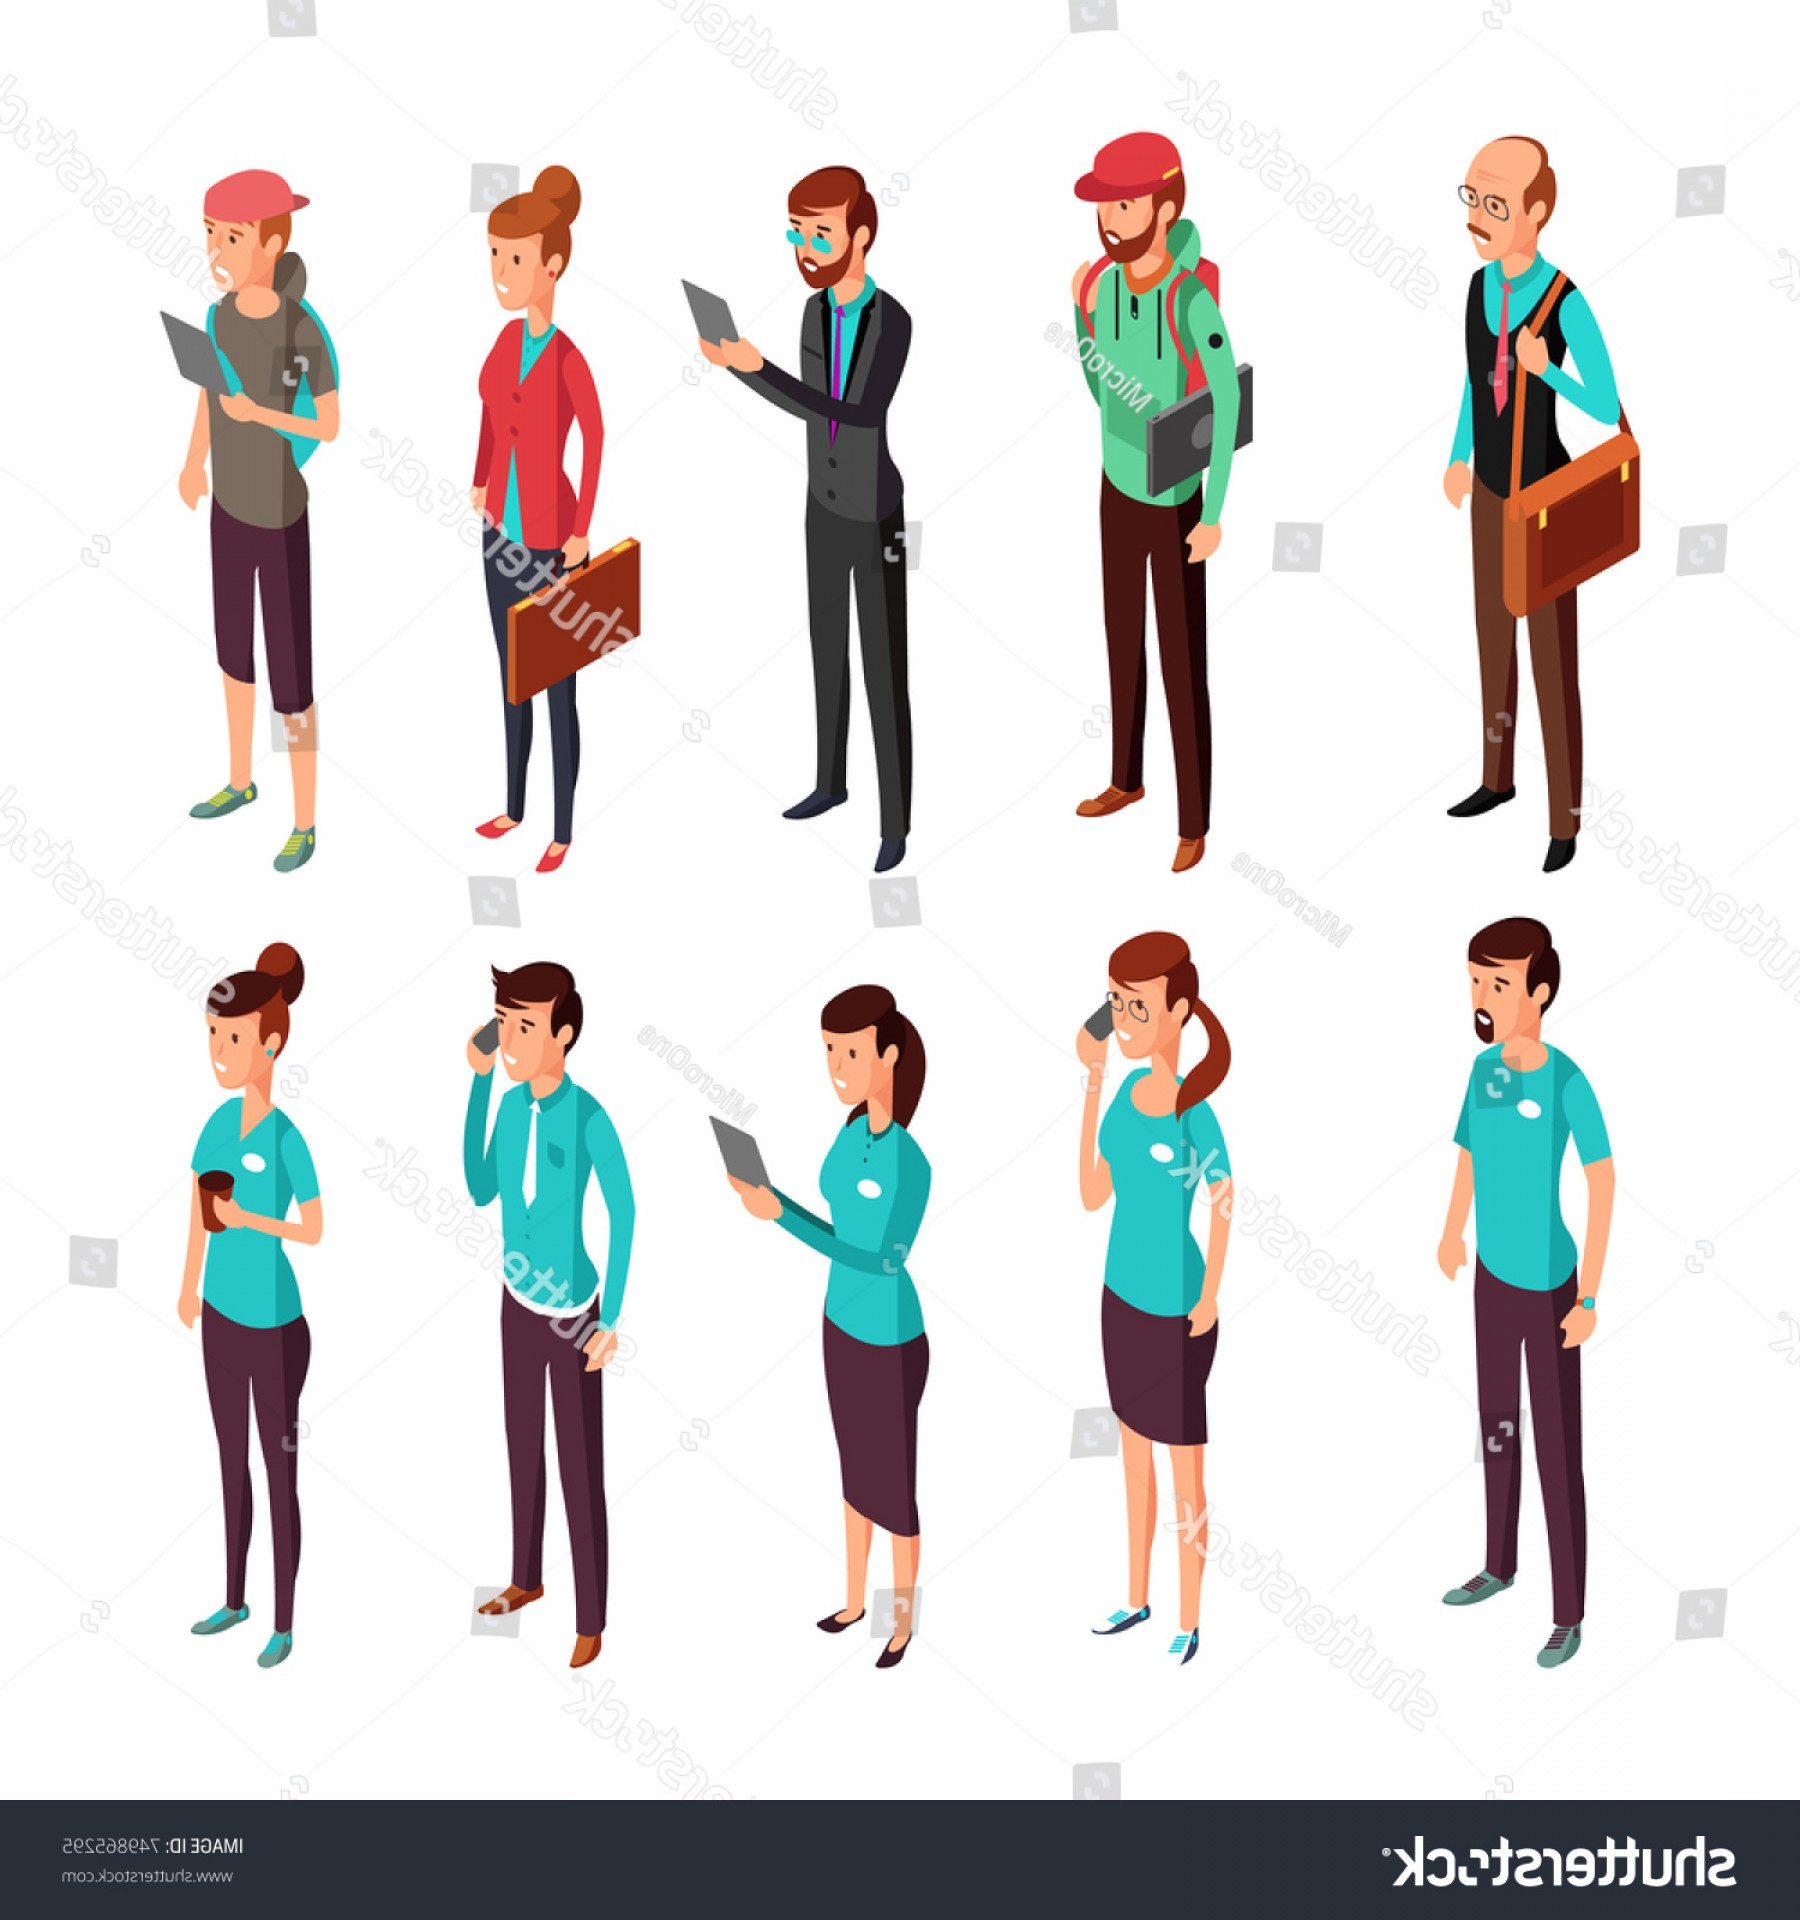 People Standing Vector: Corporate Clothes Isometric Illustration Standing People